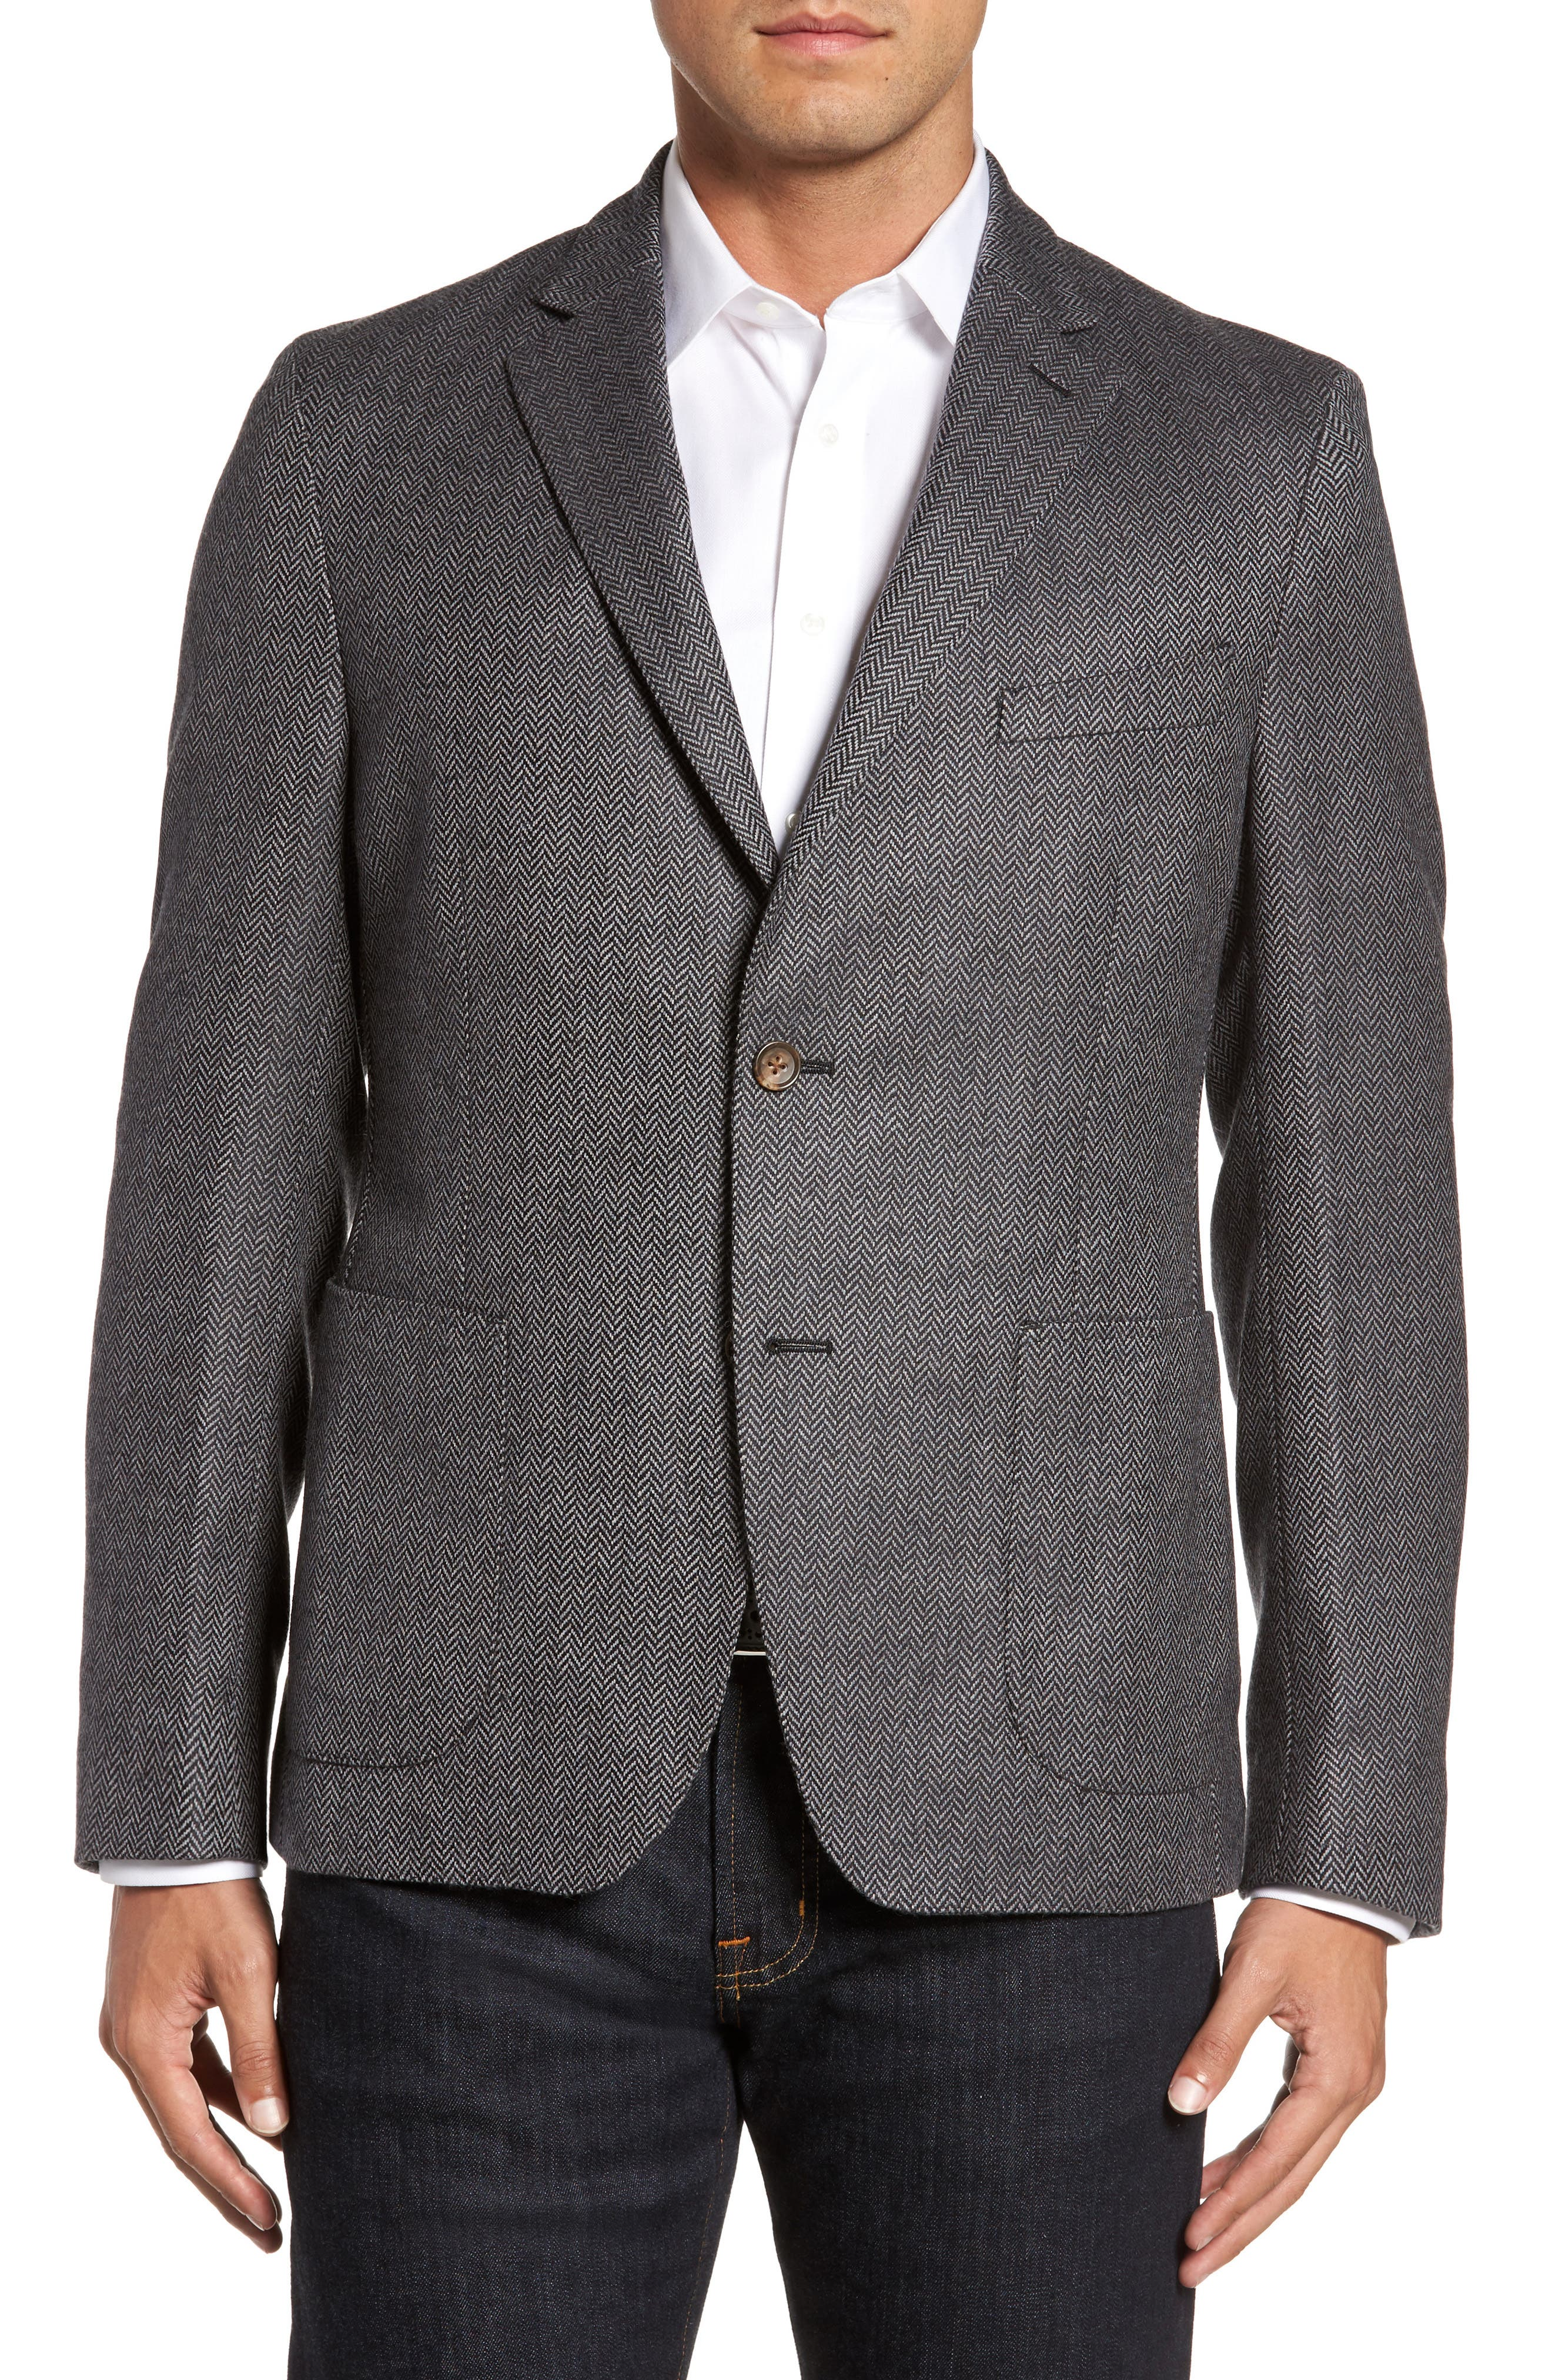 Alternate Image 1 Selected - FLYNT Classic Fit Herringbone Wool & Cashmere Jersey Sport Coat